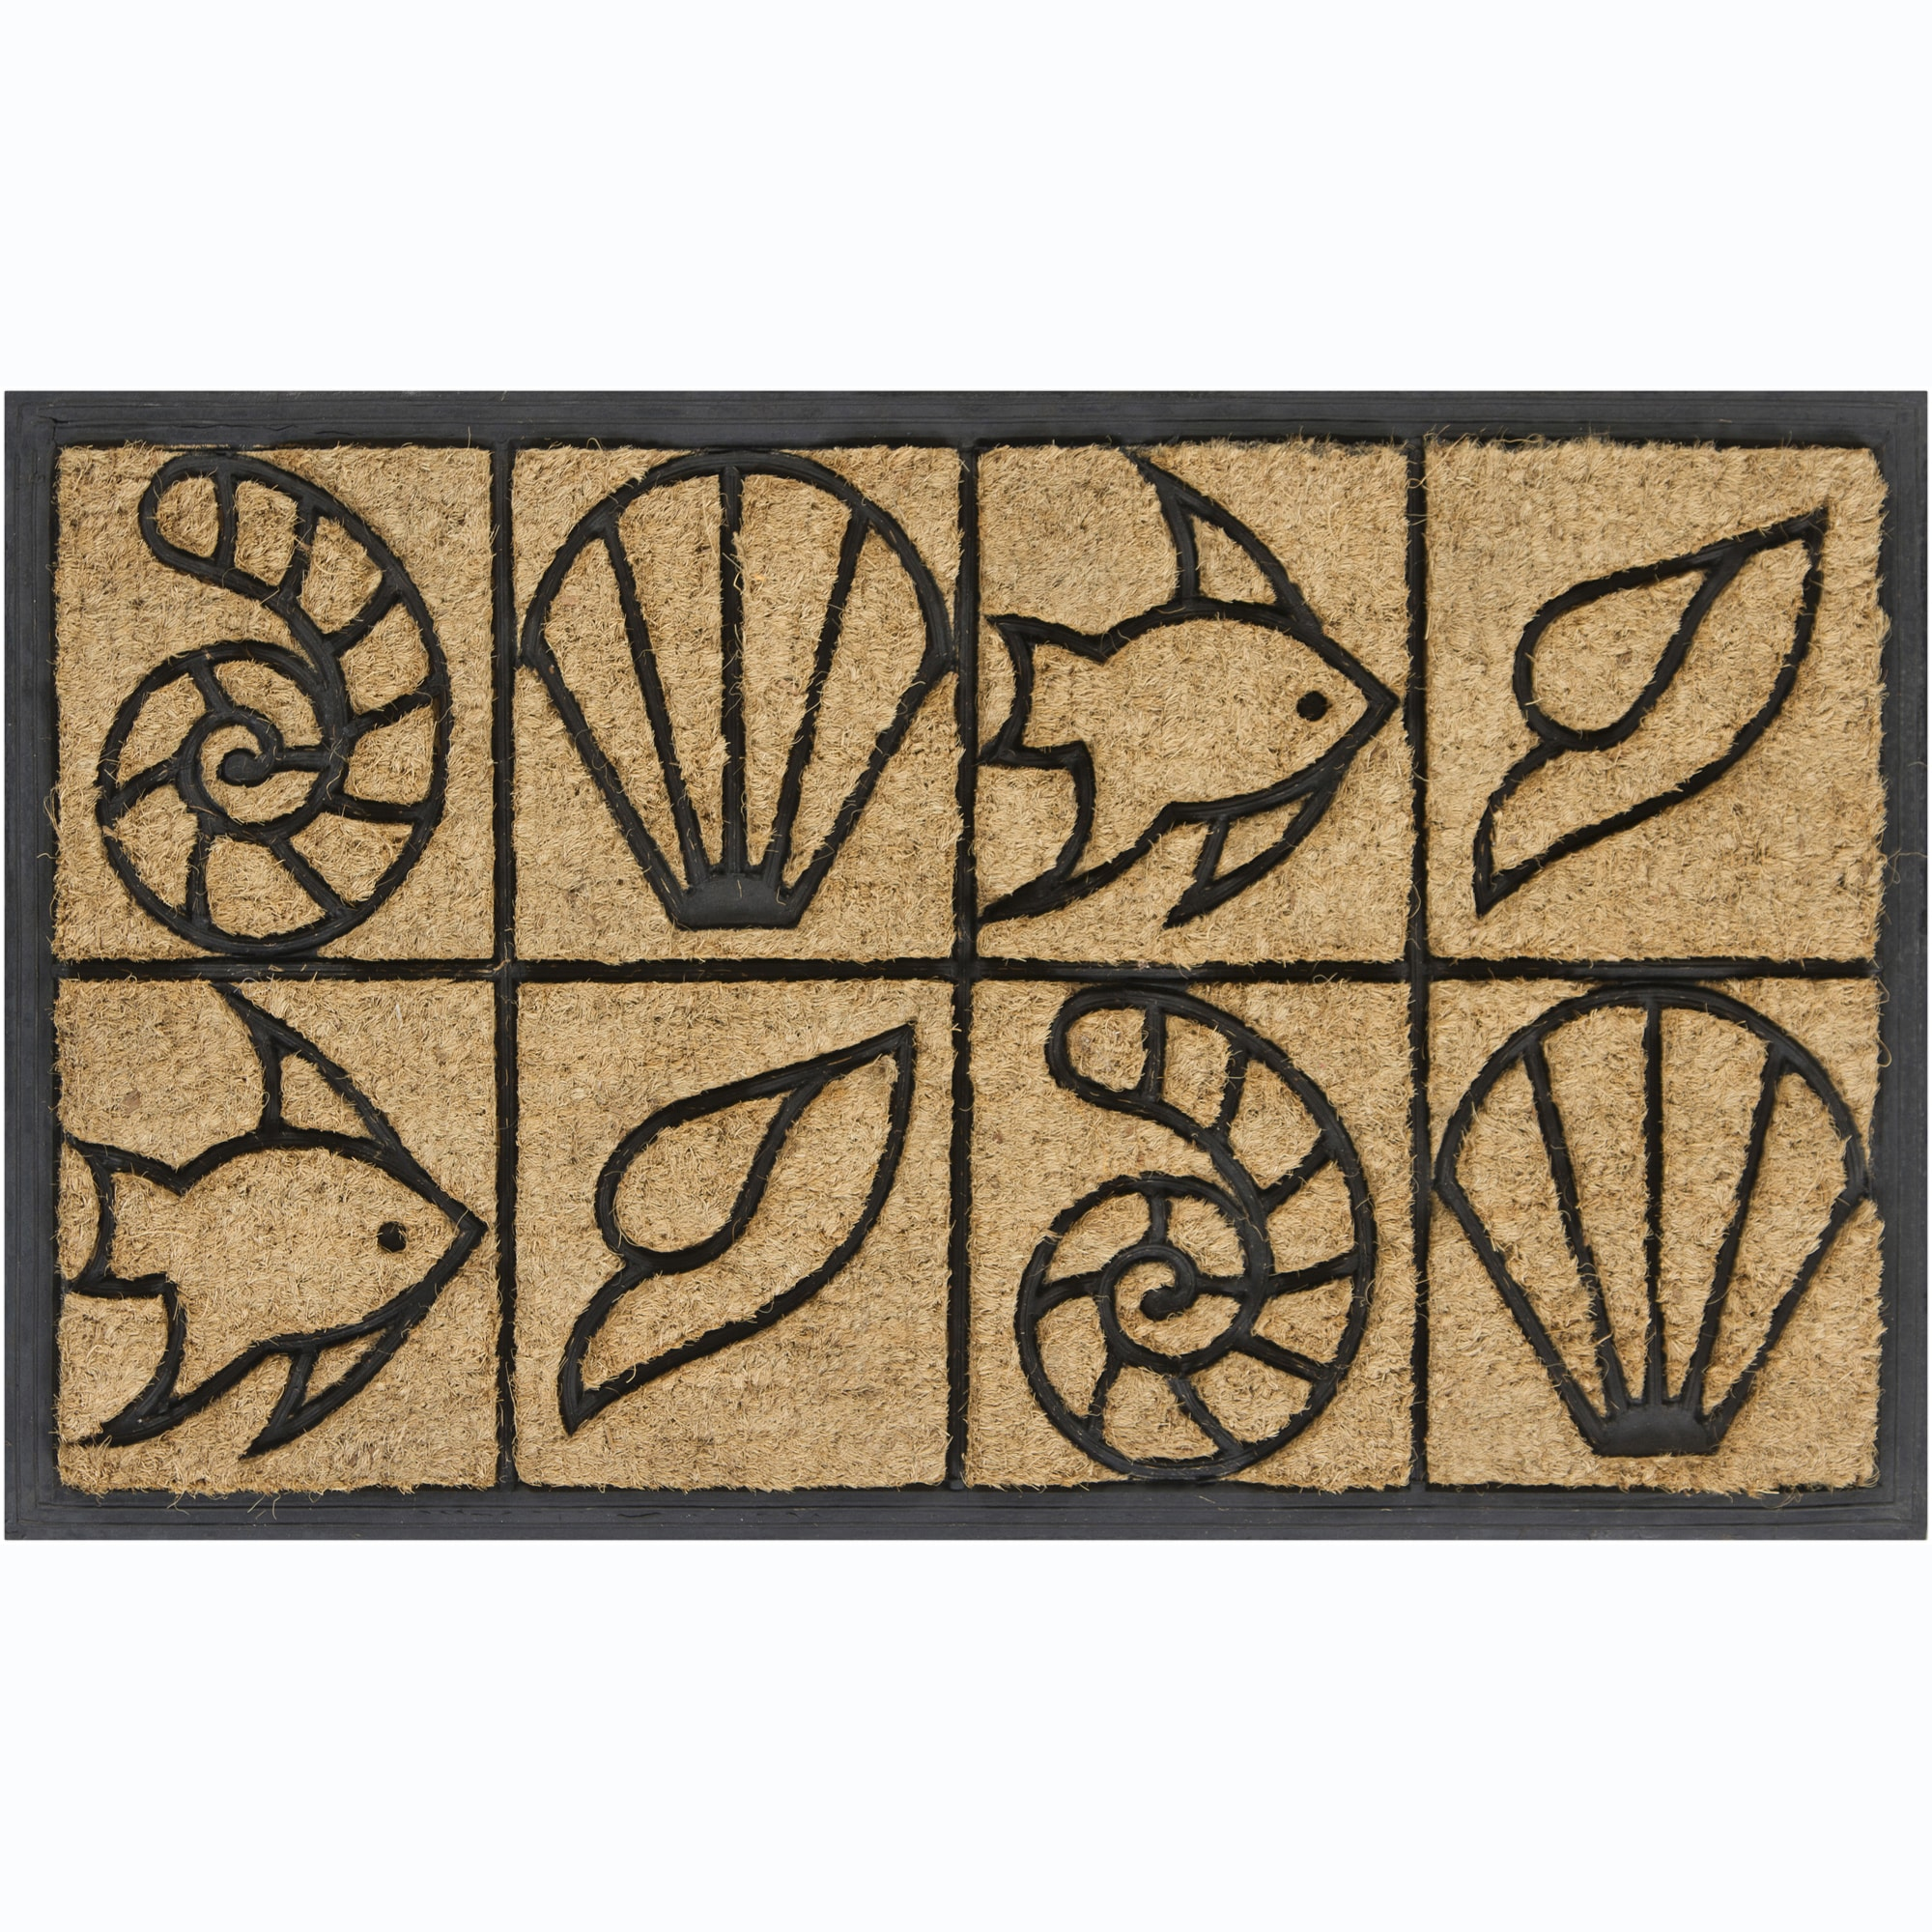 "Creative Coir/Rubber Indoor/Outdoor Door Mats (1'5"" x 2'5"") (Set of 2)"